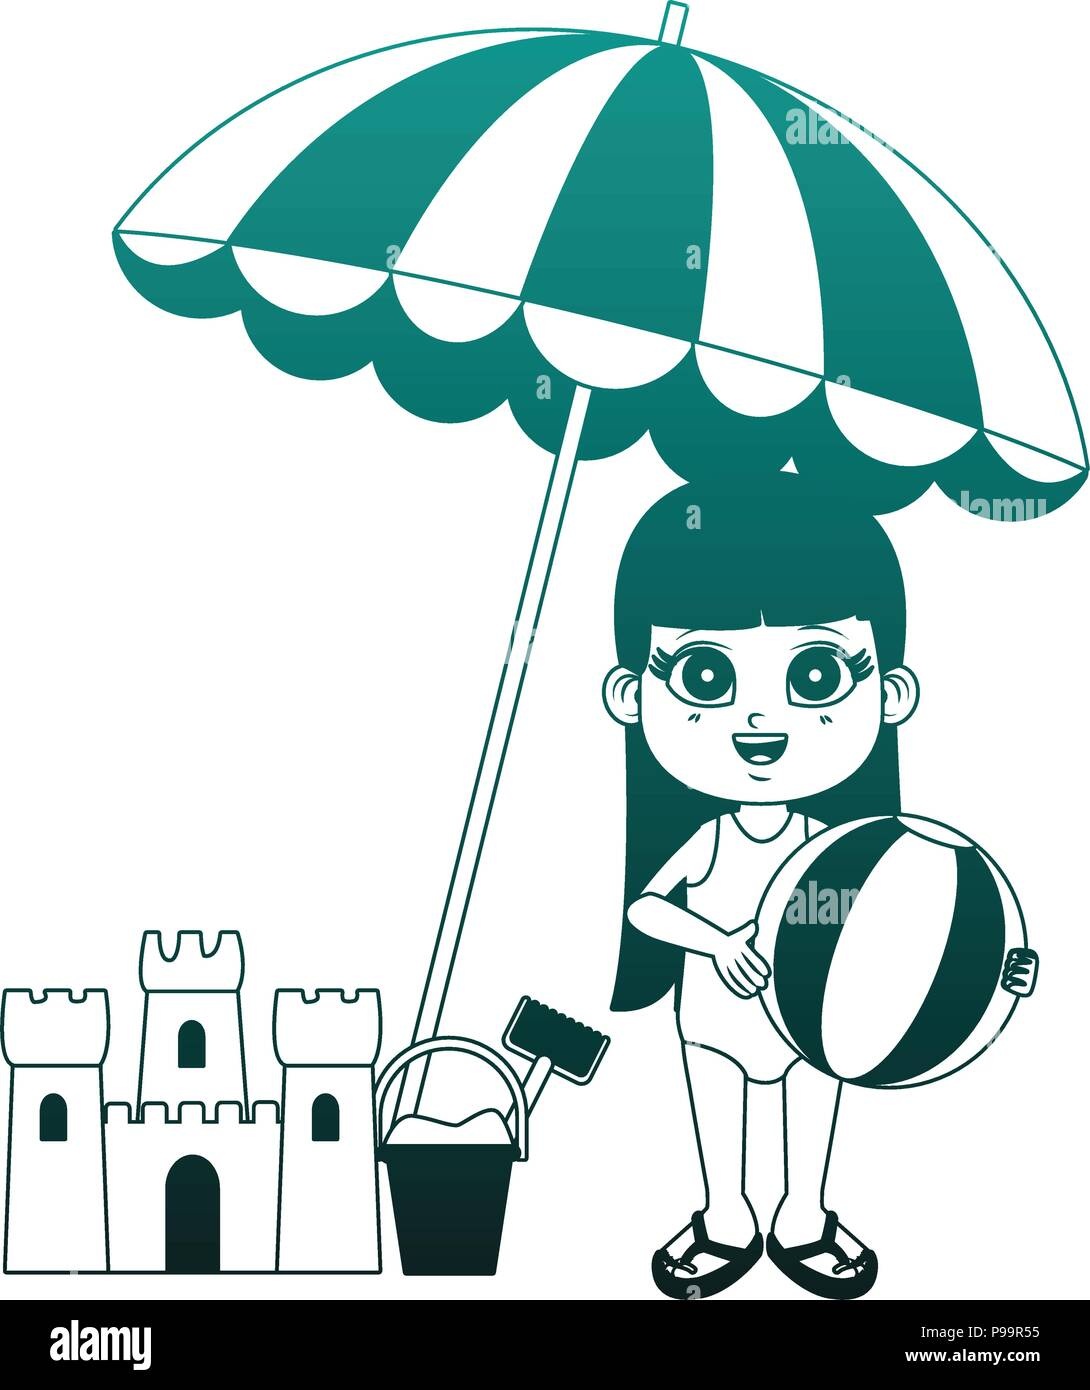 Girl Holding Beach Ball And Sand Castle With Umbrella Vector